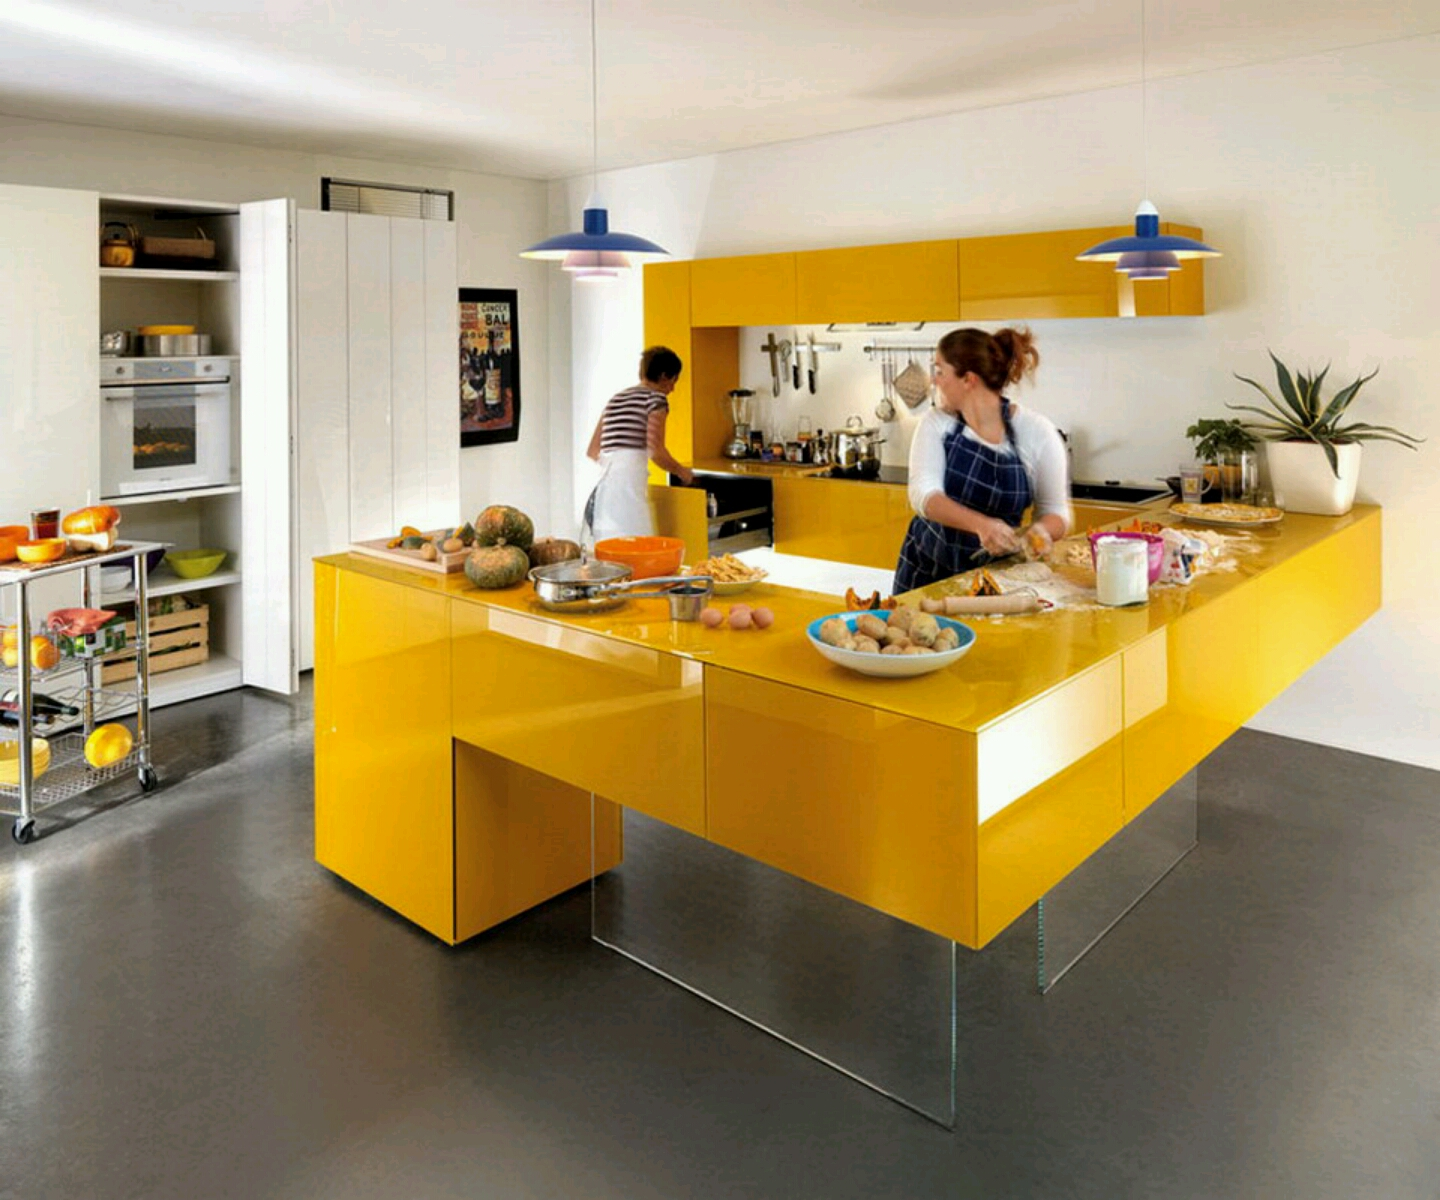 modern kitchen cabinets designs ideas furniture gallery ForKitchen Furniture Design